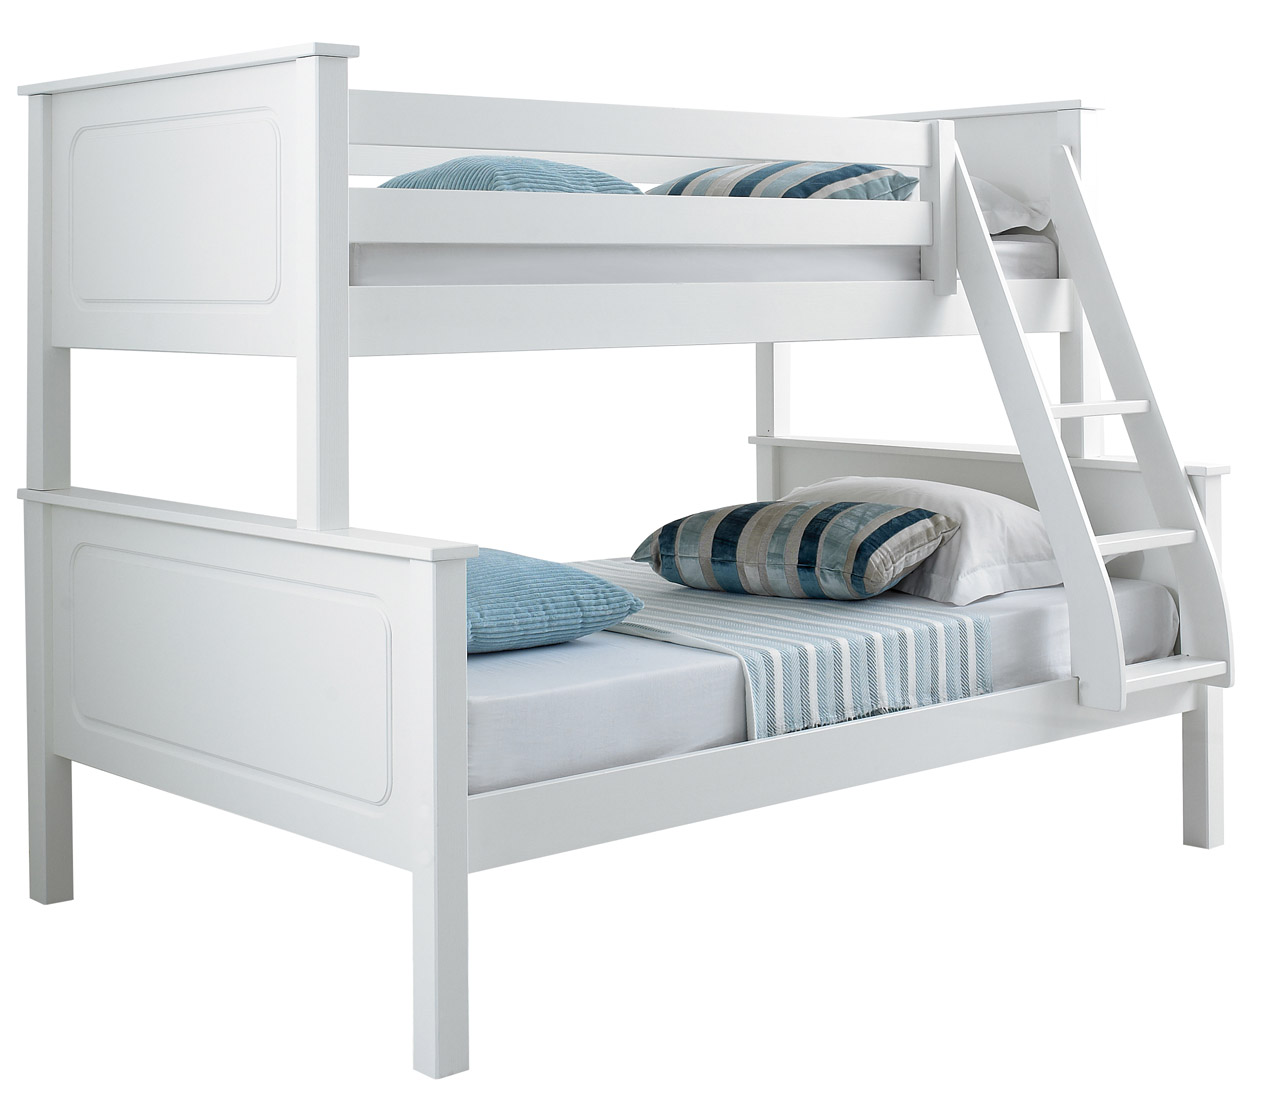 Vancouver solid pine wooden triple sleeper bunk bed with 2 x mattresses Bed with mattress